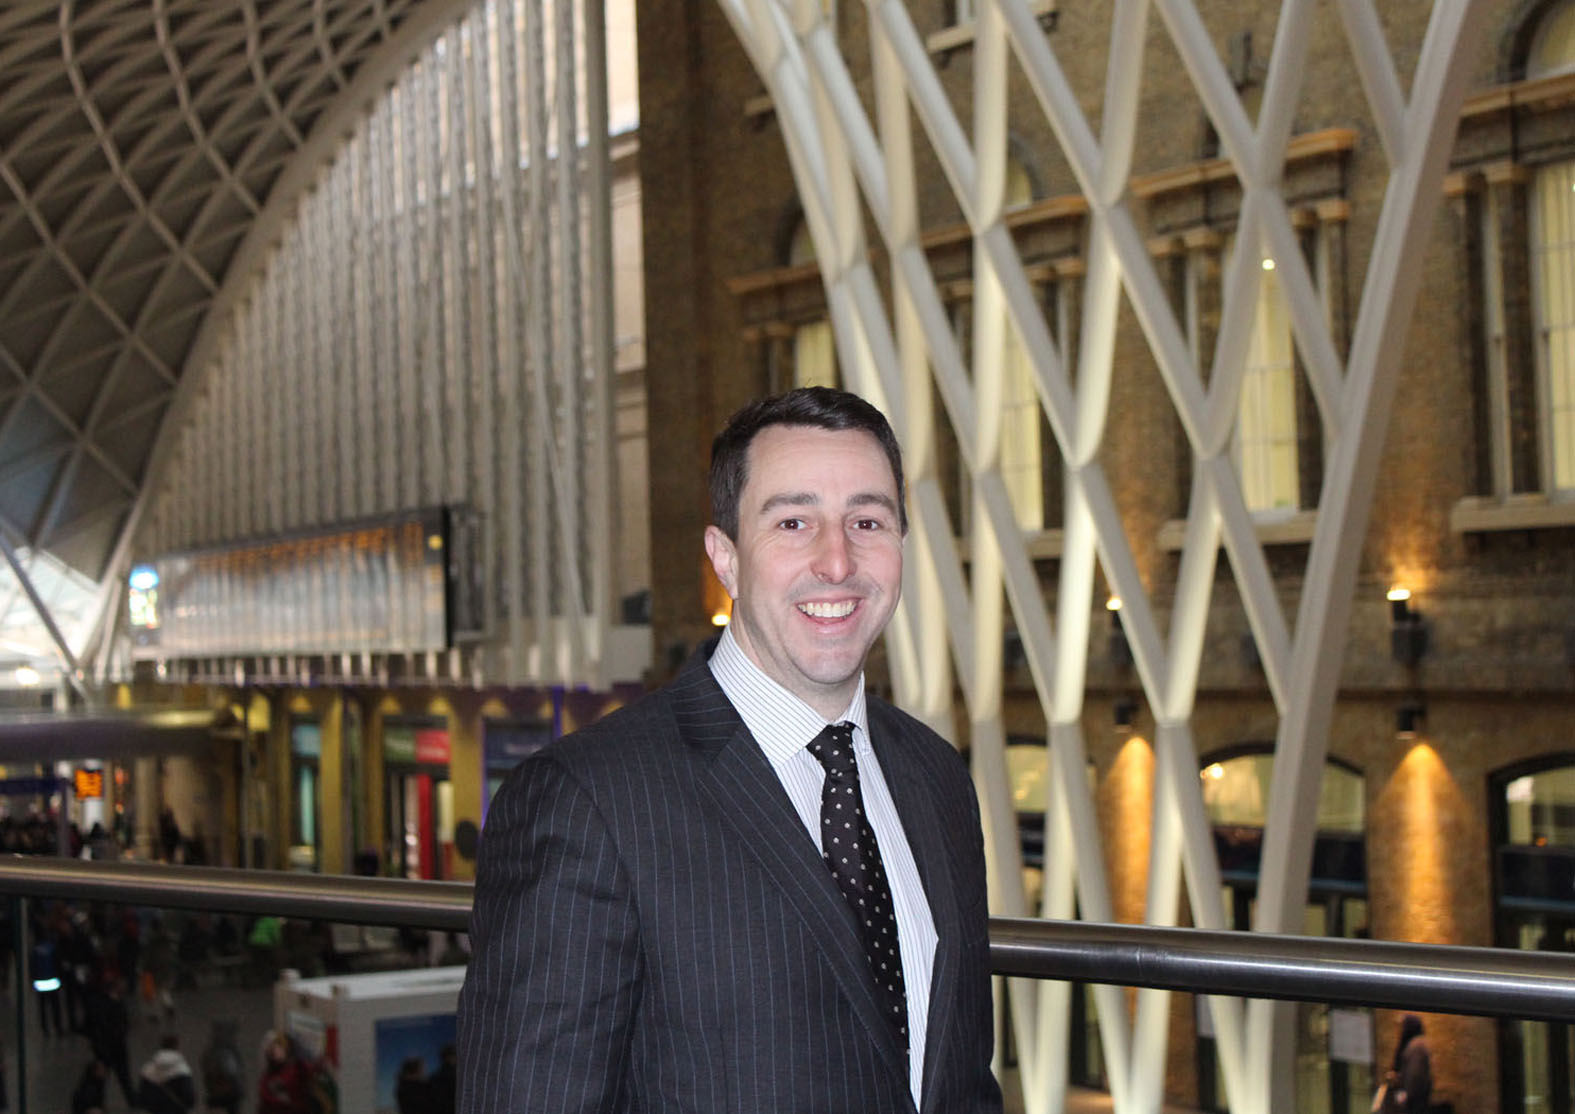 Justin Ayling of Express Rail Services